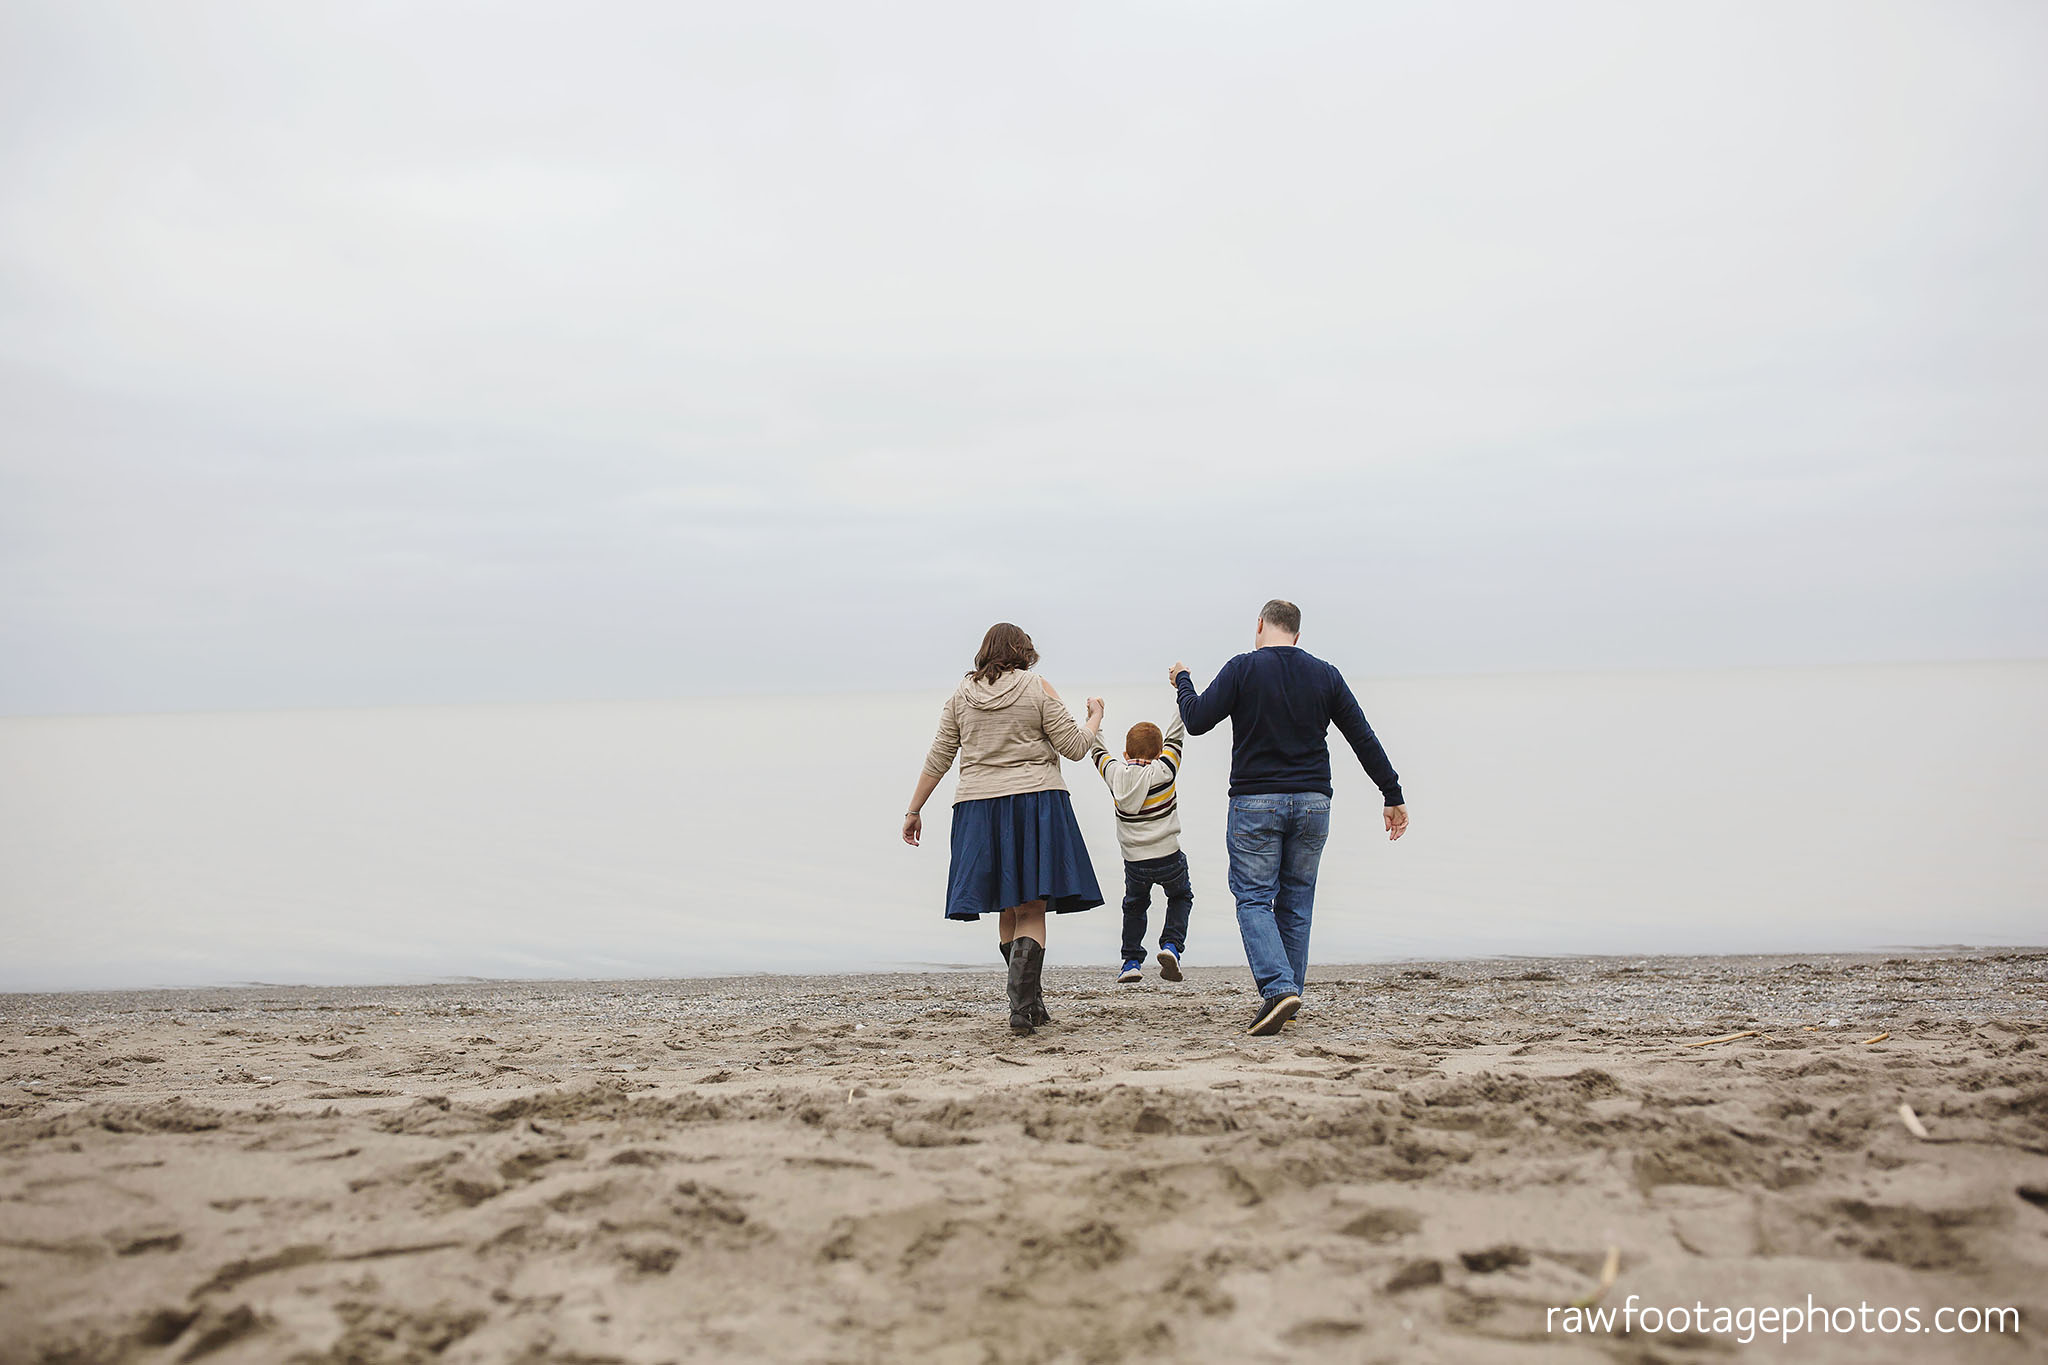 london_ontario_family_photographer-port_stanley_photography-raw_footage_photography-family_photos-beach_photos-fall_family_photos-lifestyle_family_photography-candid_photographer004.jpg